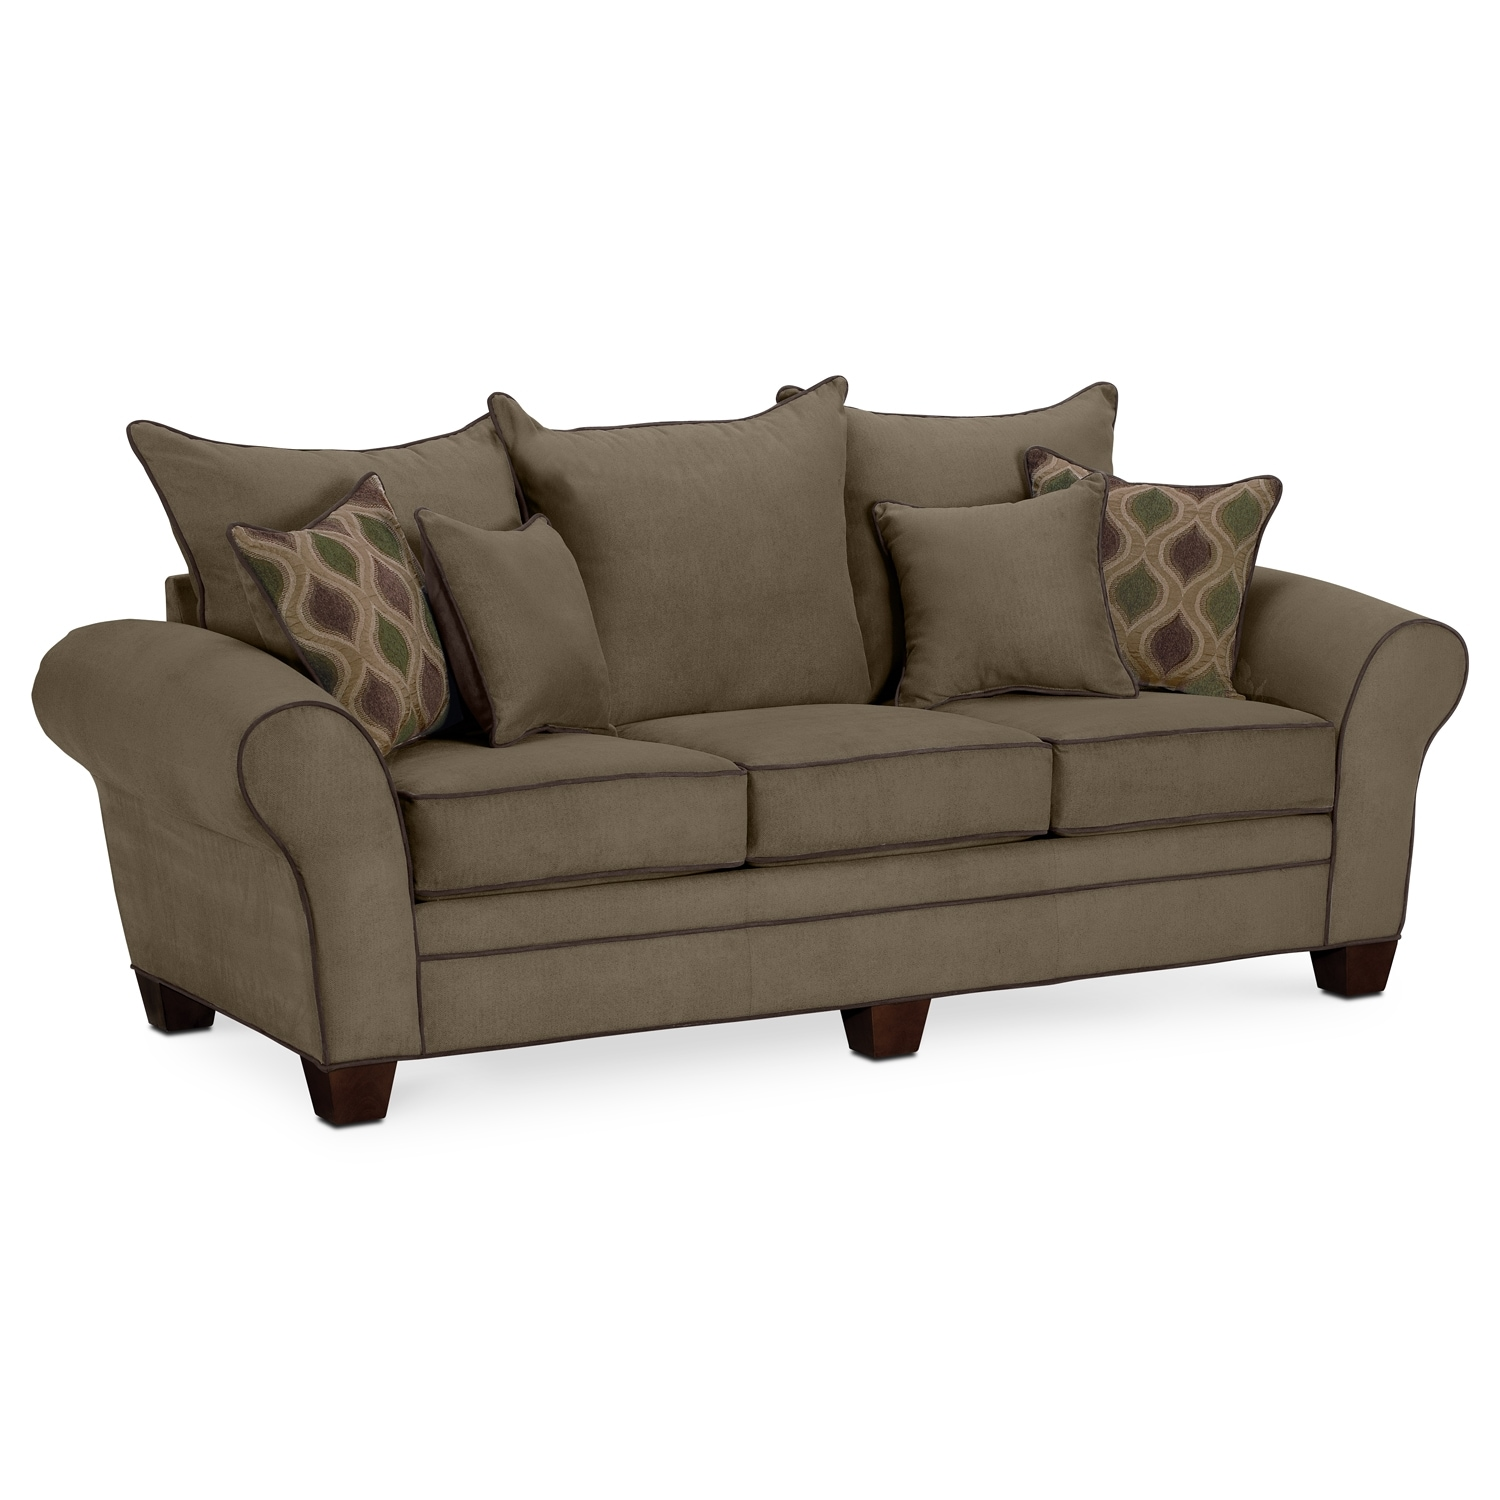 Rendezvous sofa olive value city furniture for Couch furniture